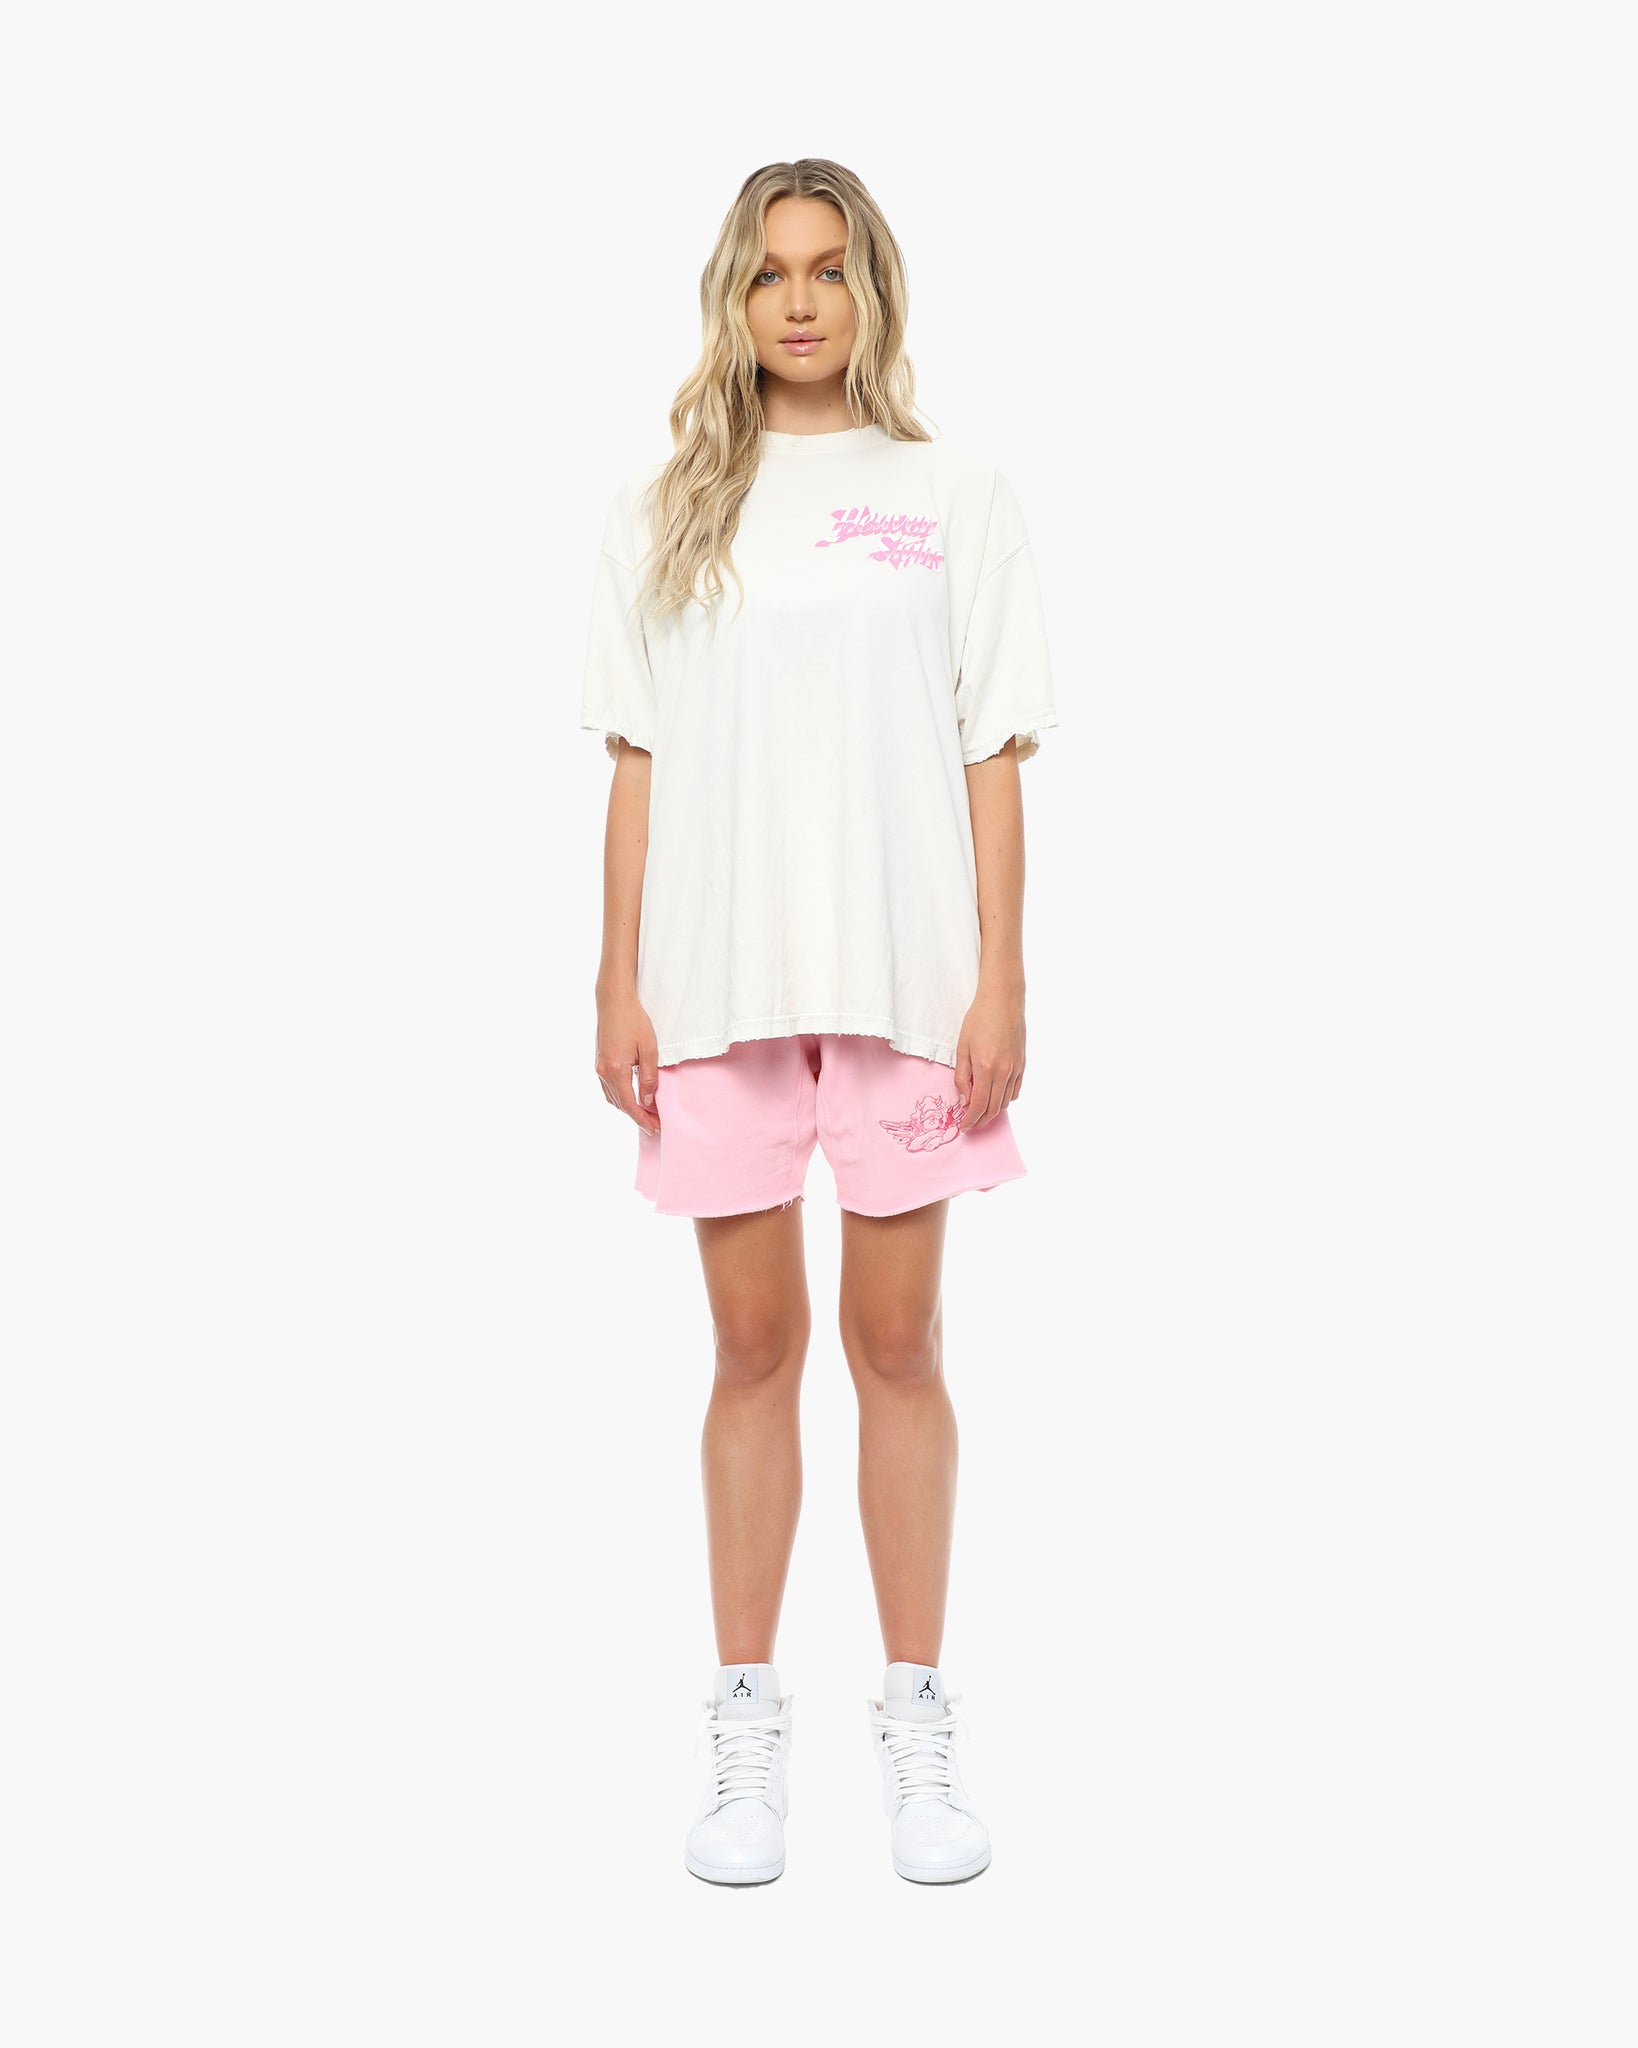 Heaven Sighs (White/Pink) Tee